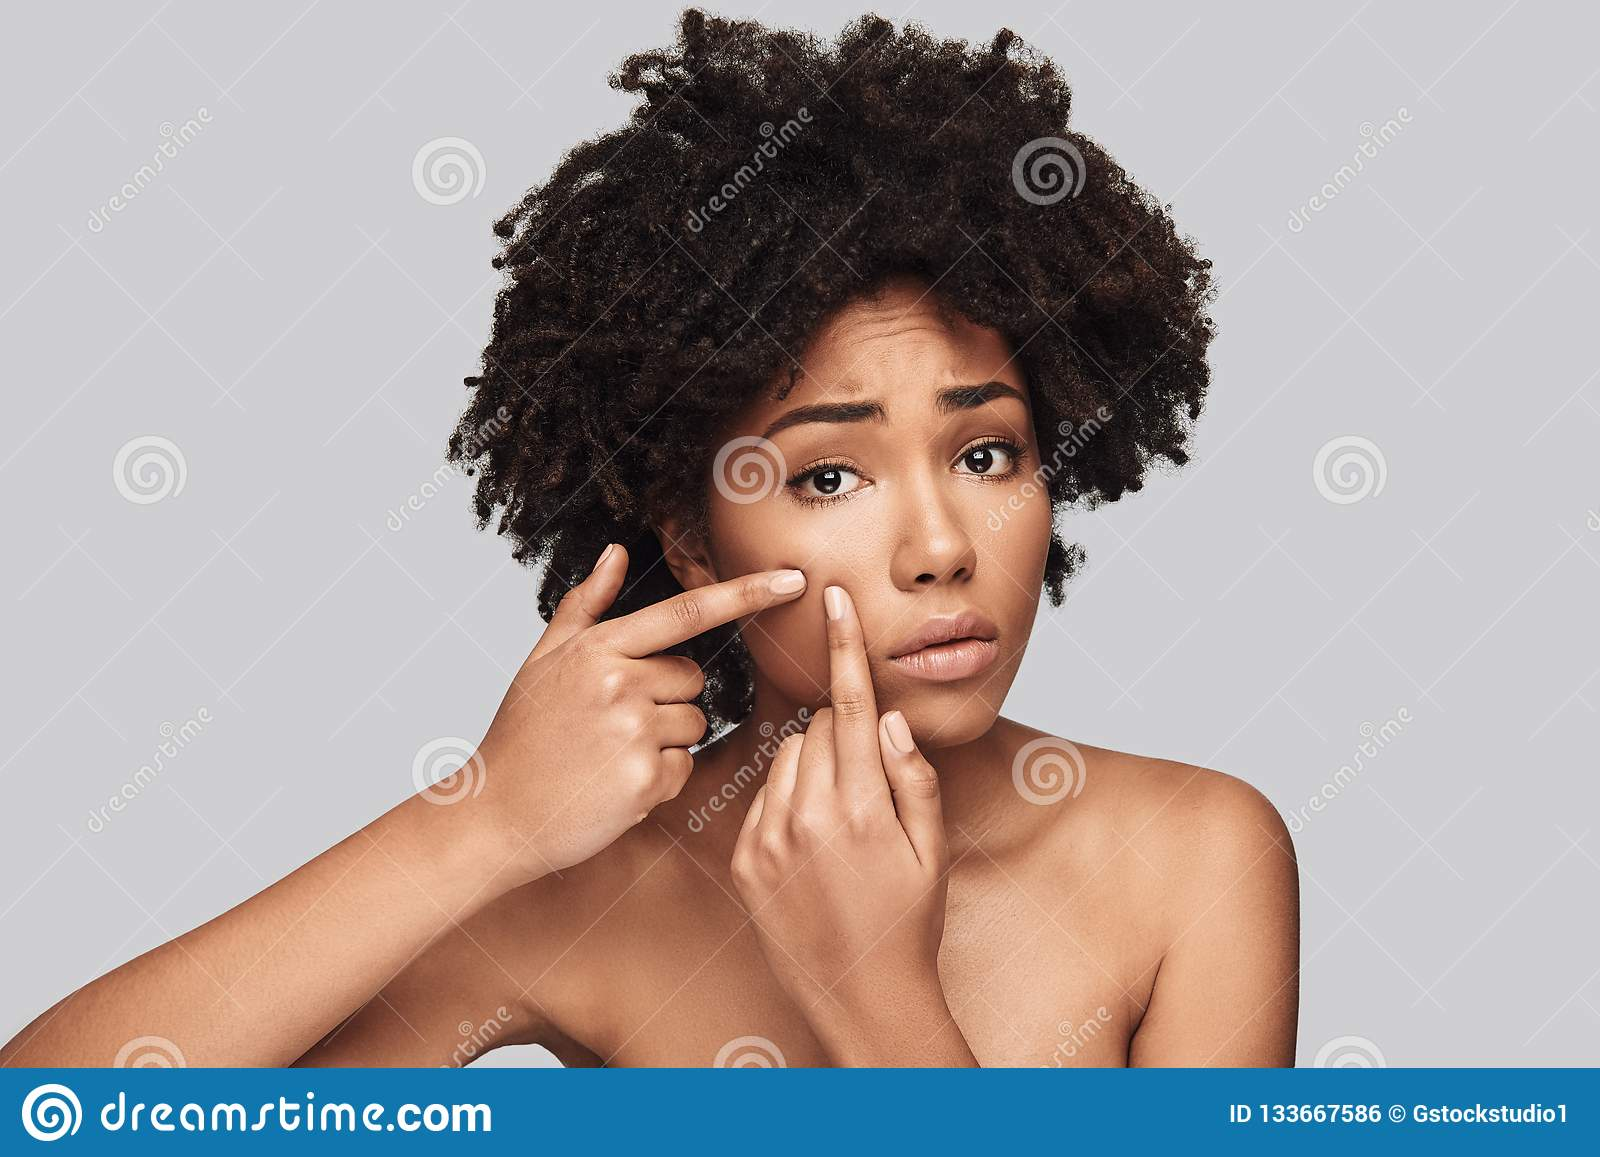 Another Acne Stock Photo Image Of Mixed Emotion Camera 133667586